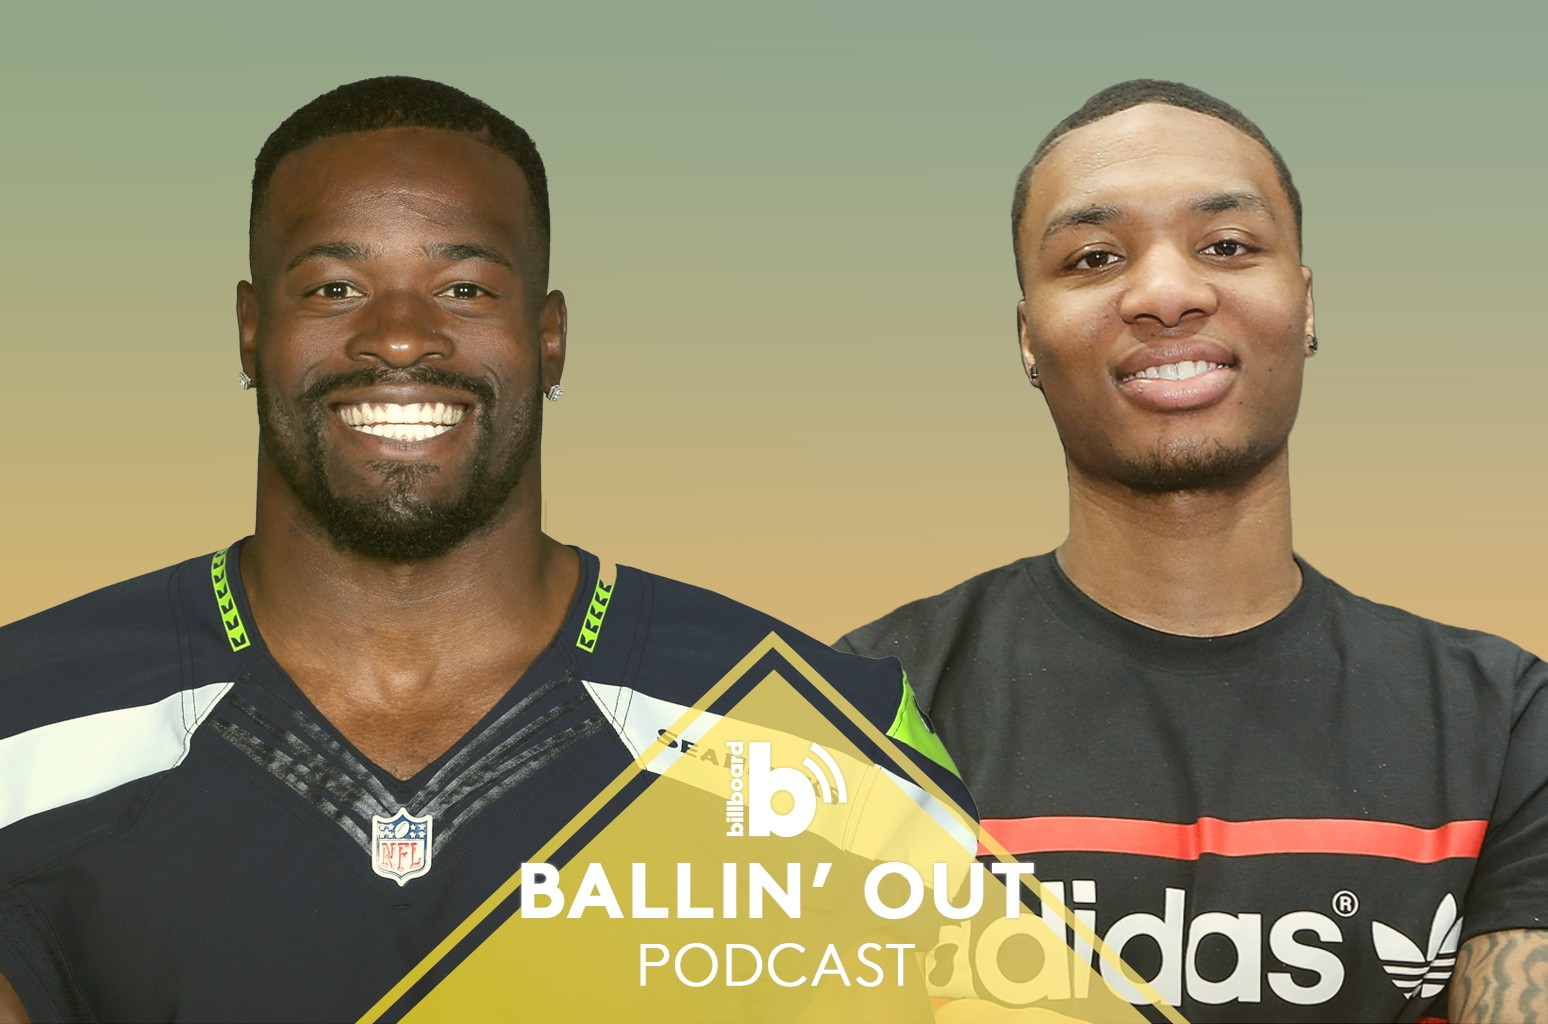 Ballin' Out Podcast featuring: Christine Michael and Damian Lillard